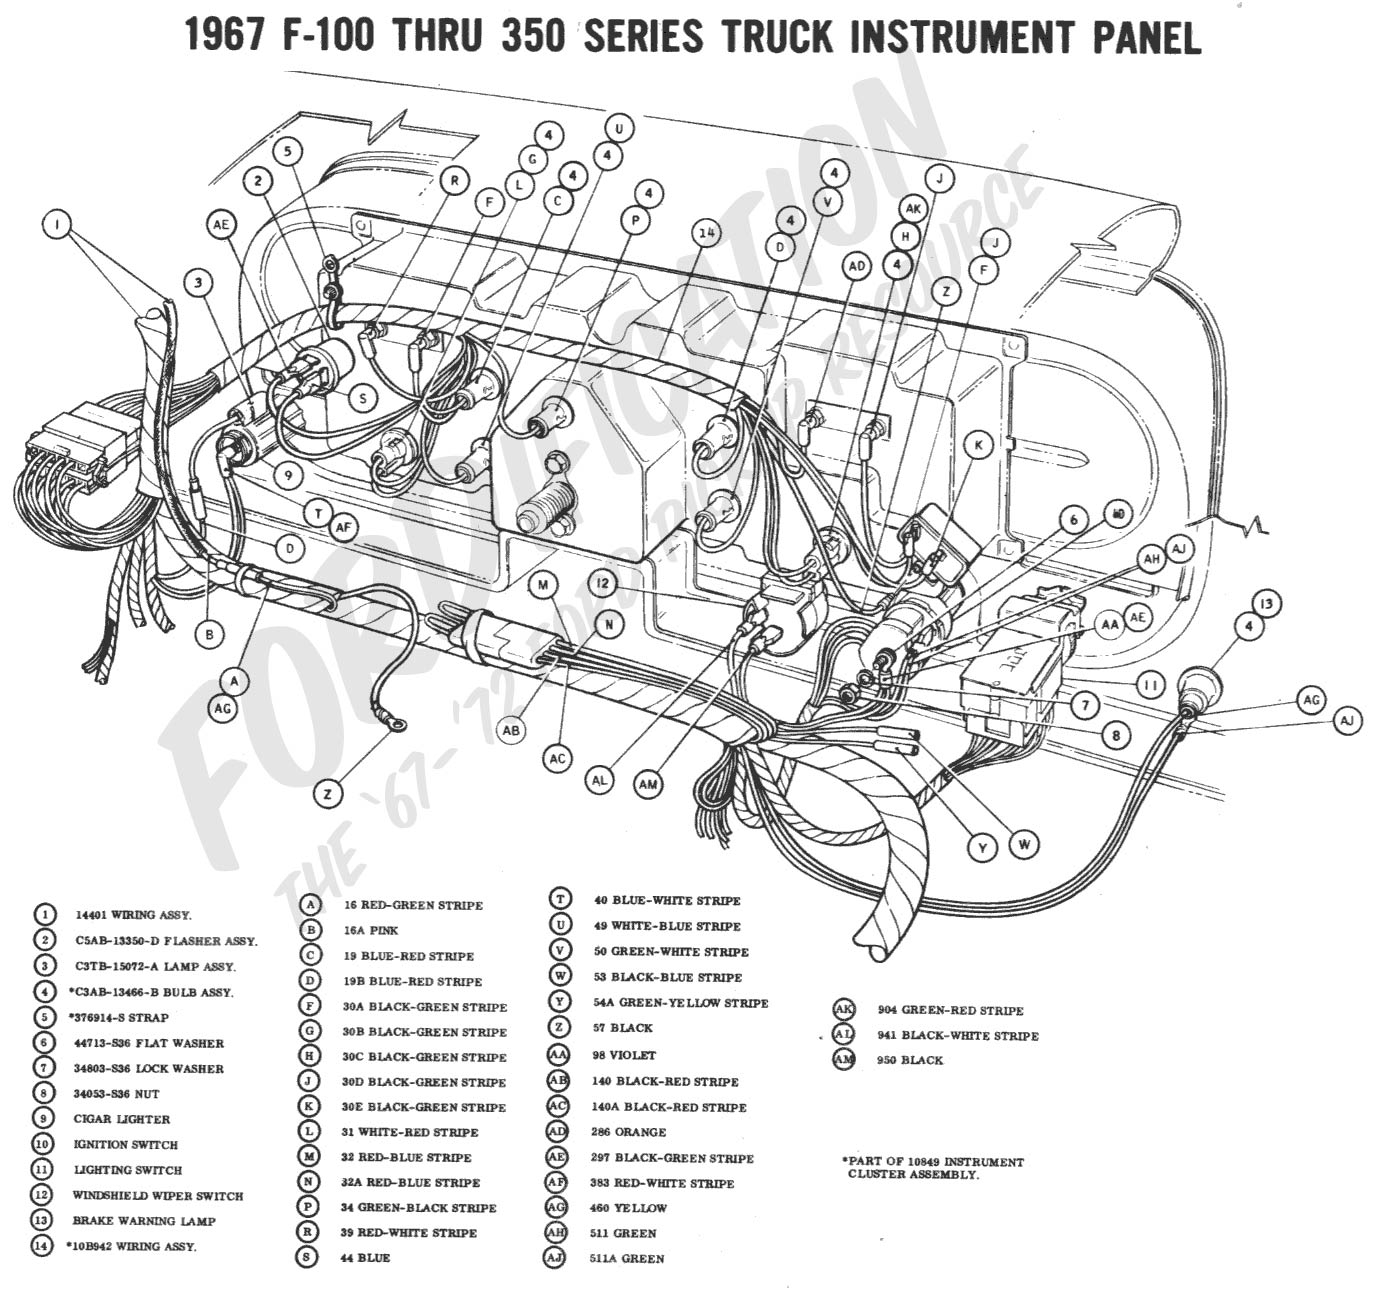 1967 F-100 thru F-350 instrument panel. 1967 Master Wiring Diagram